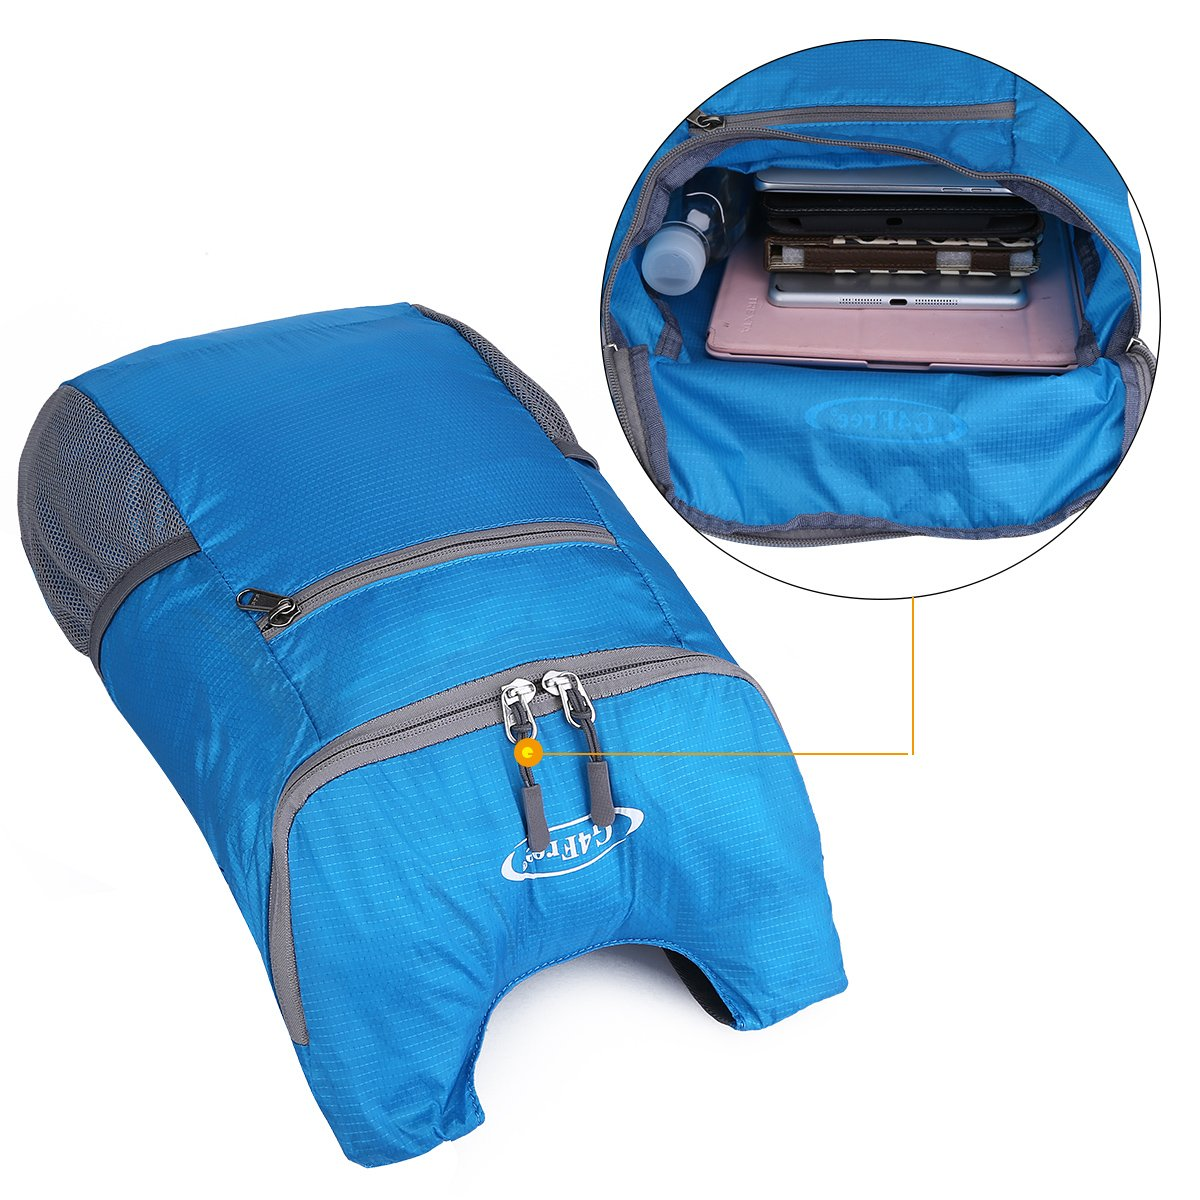 G4Free Lightweight Packable Shoulder Backpack Hiking Daypacks Small Casual Foldable Camping Outdoor Bag for Adults Kids 11L(Blue) by G4Free (Image #7)